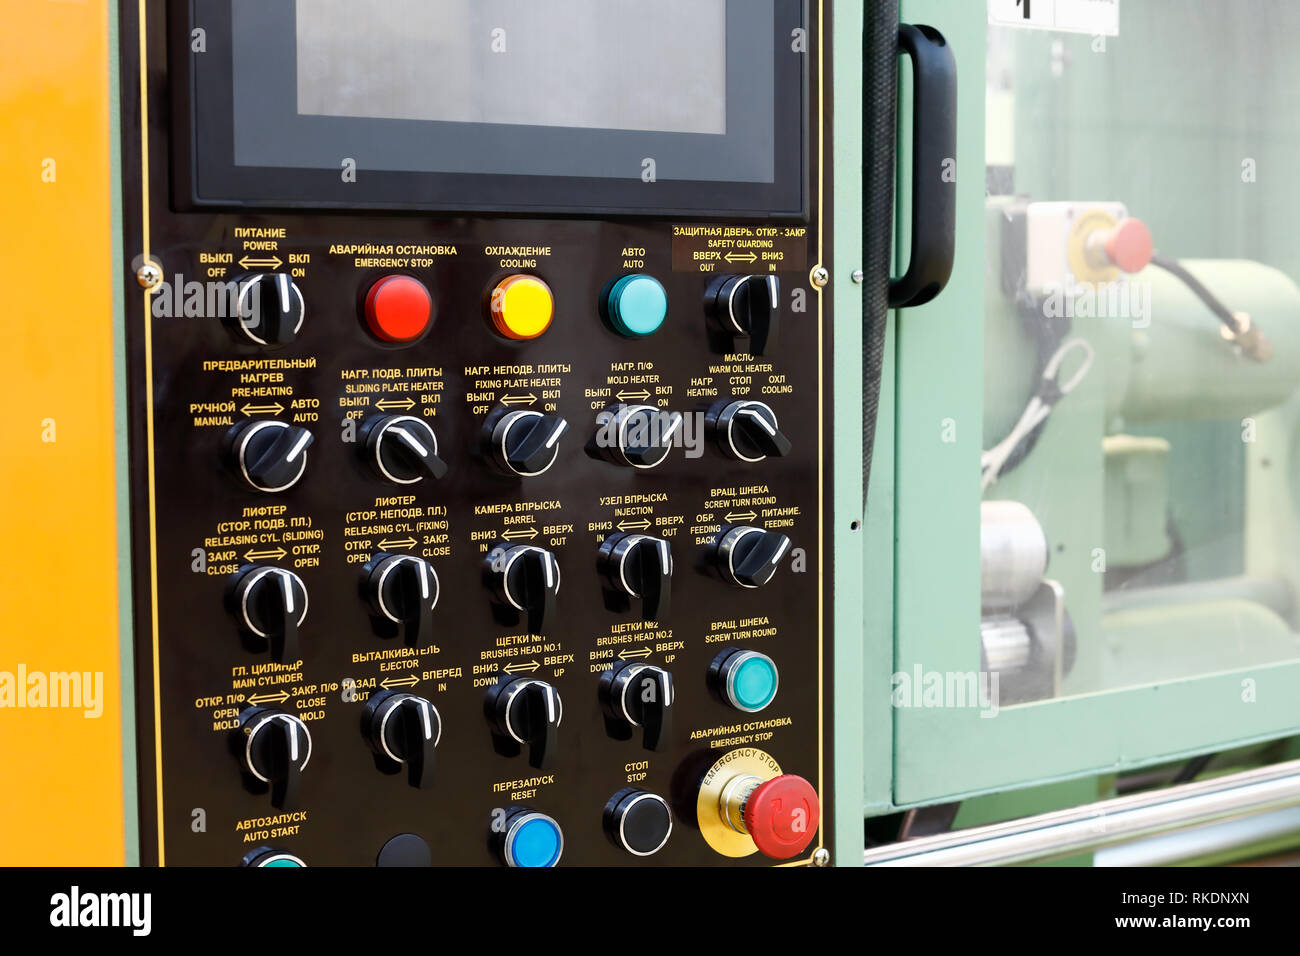 Automatic hydraulic rubber molding press machine with a control panel on the foreground. - Stock Image